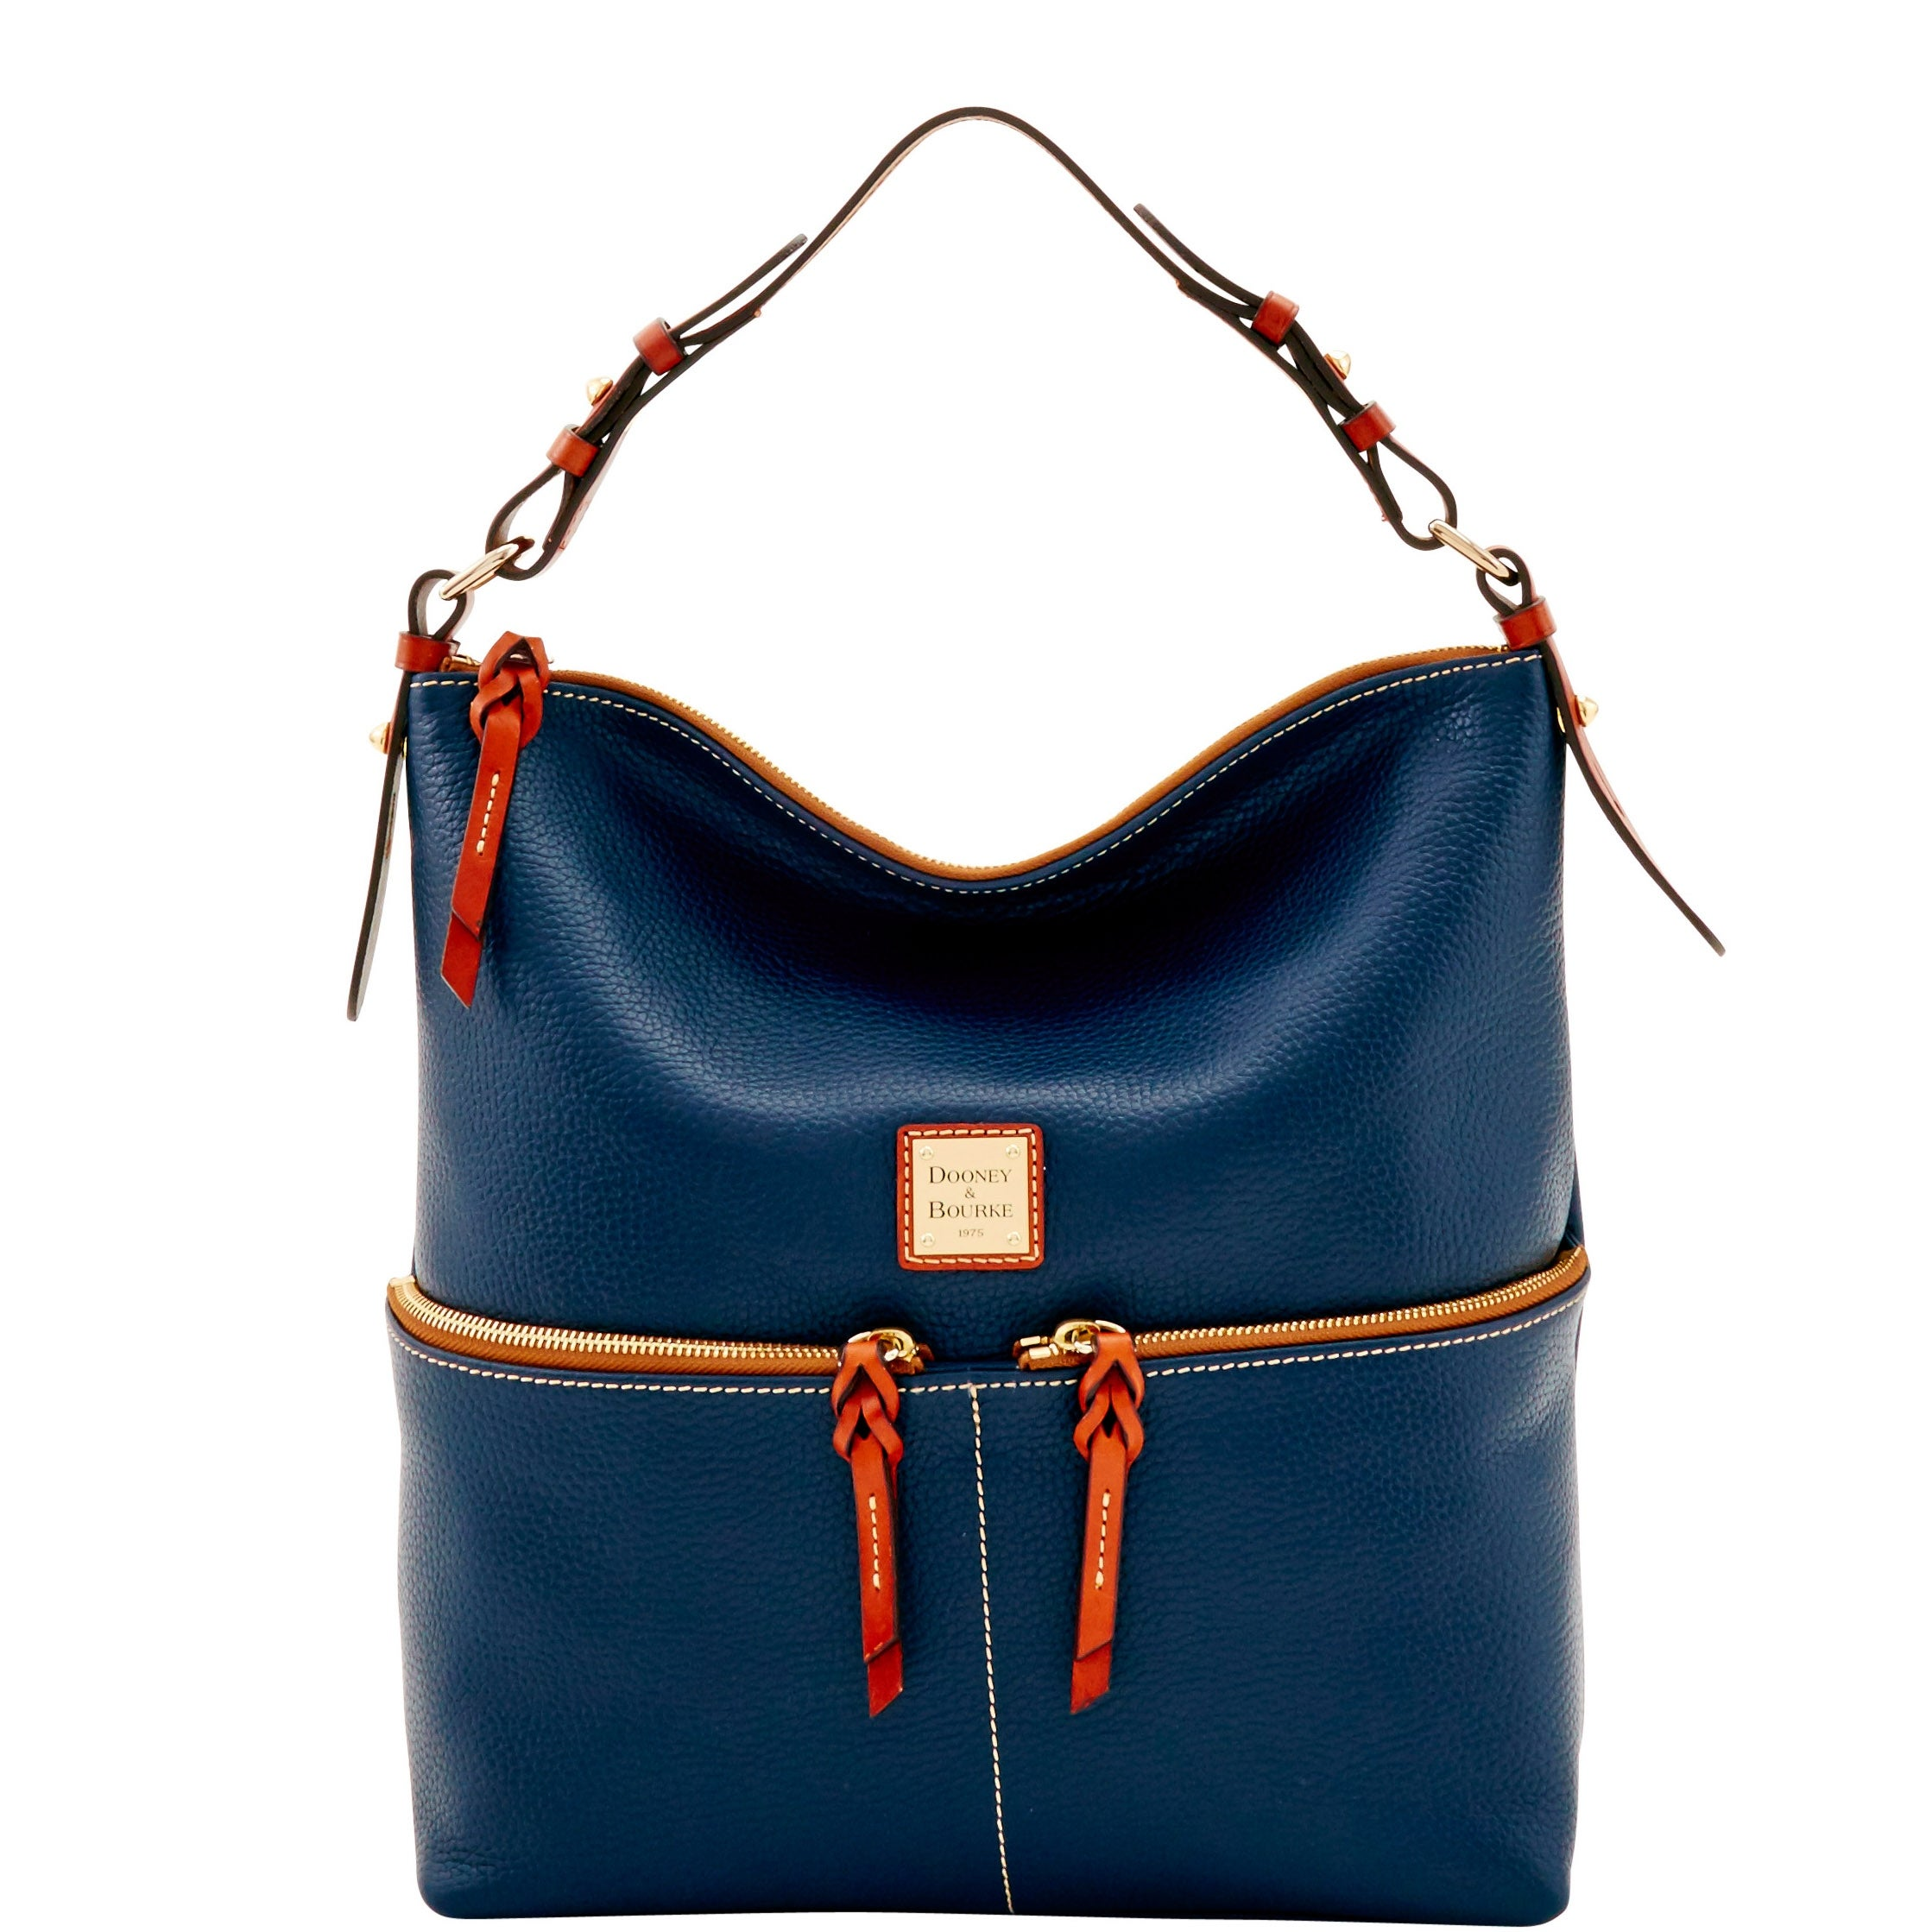 ed8fbcf679 Shop Dooney   Bourke Pebble Grain Zipper Pocket Sac Shoulder Bag (Introduced  by Dooney   Bourke at  268 in May 2017) - Free Shipping Today -  Overstock.com - ...